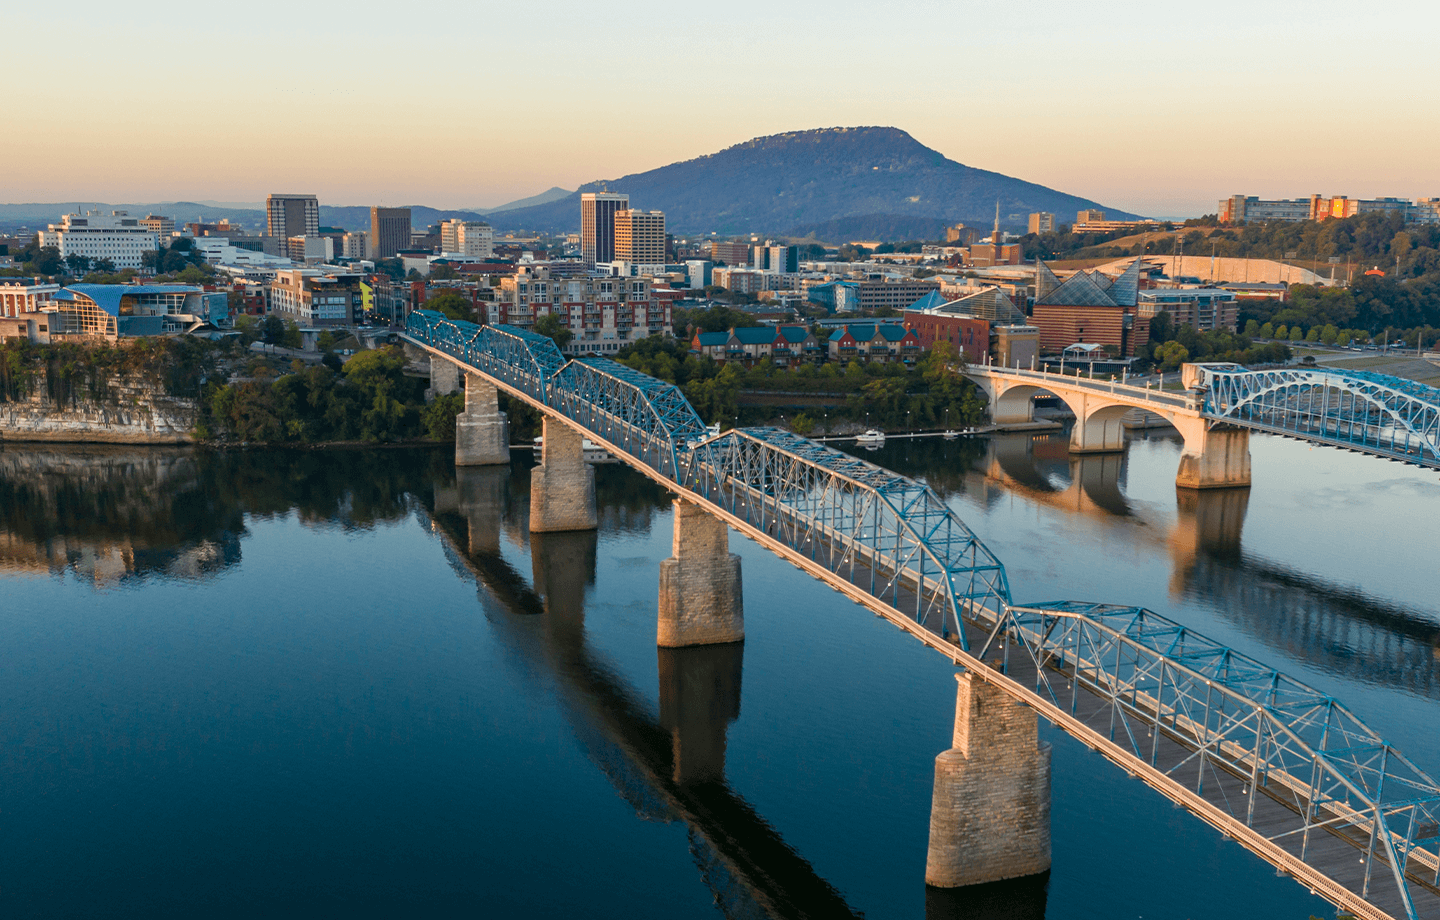 Walnut Street and Market Street-Bridges leading to Chattanooga, TN